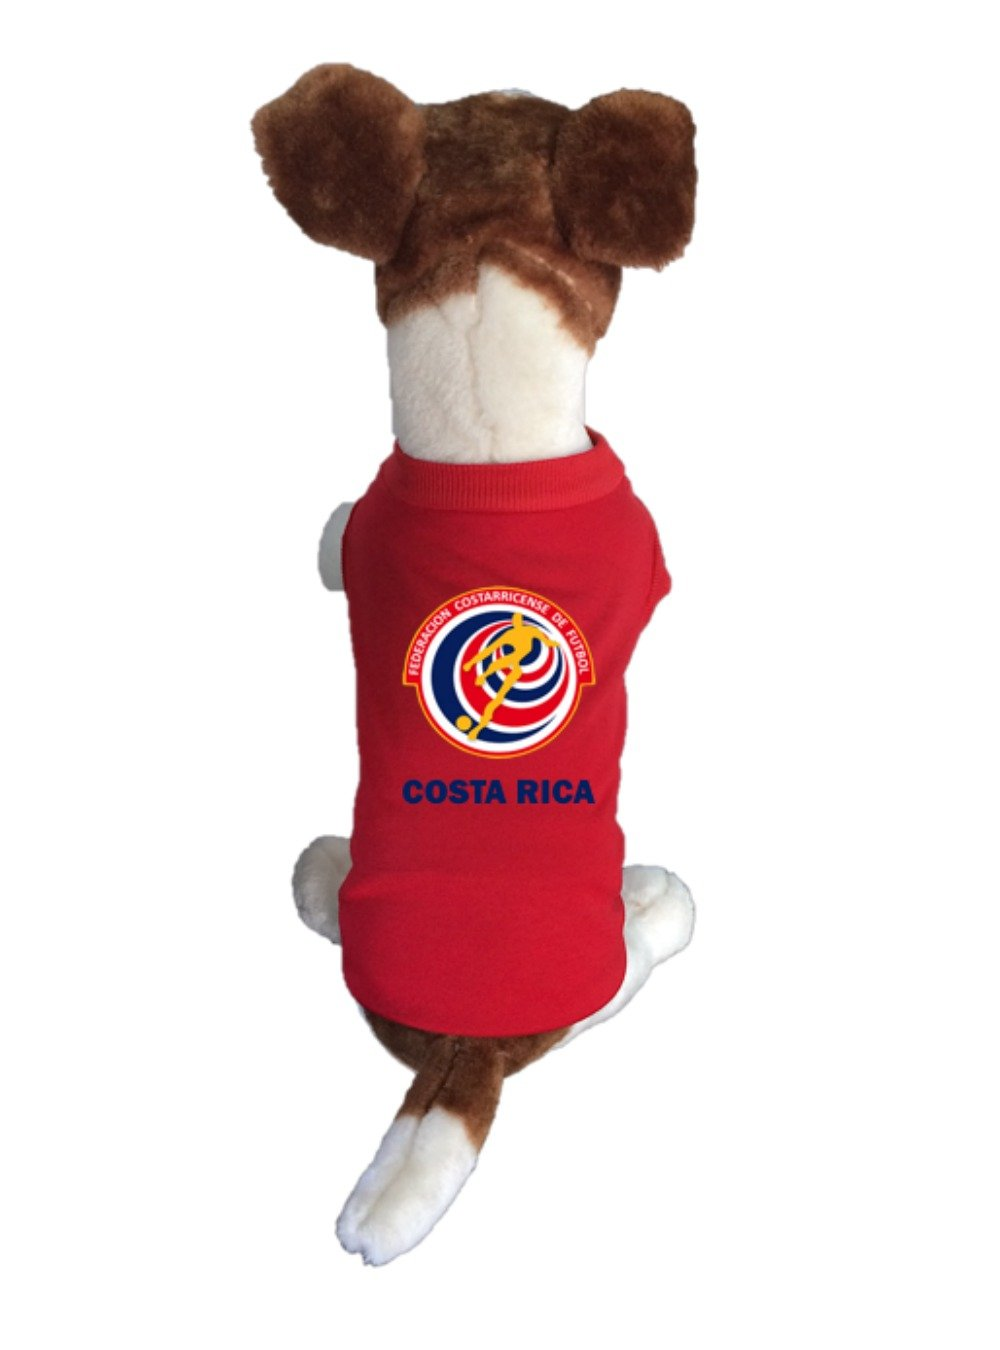 Amazon.com : My Pet Boutique Costa Rica-Dog Soccer Jersey-Pet T-shirt- -breathable Fabric-makes Dog Comfortable-cozy up Costume to Celebrate The Russia ...